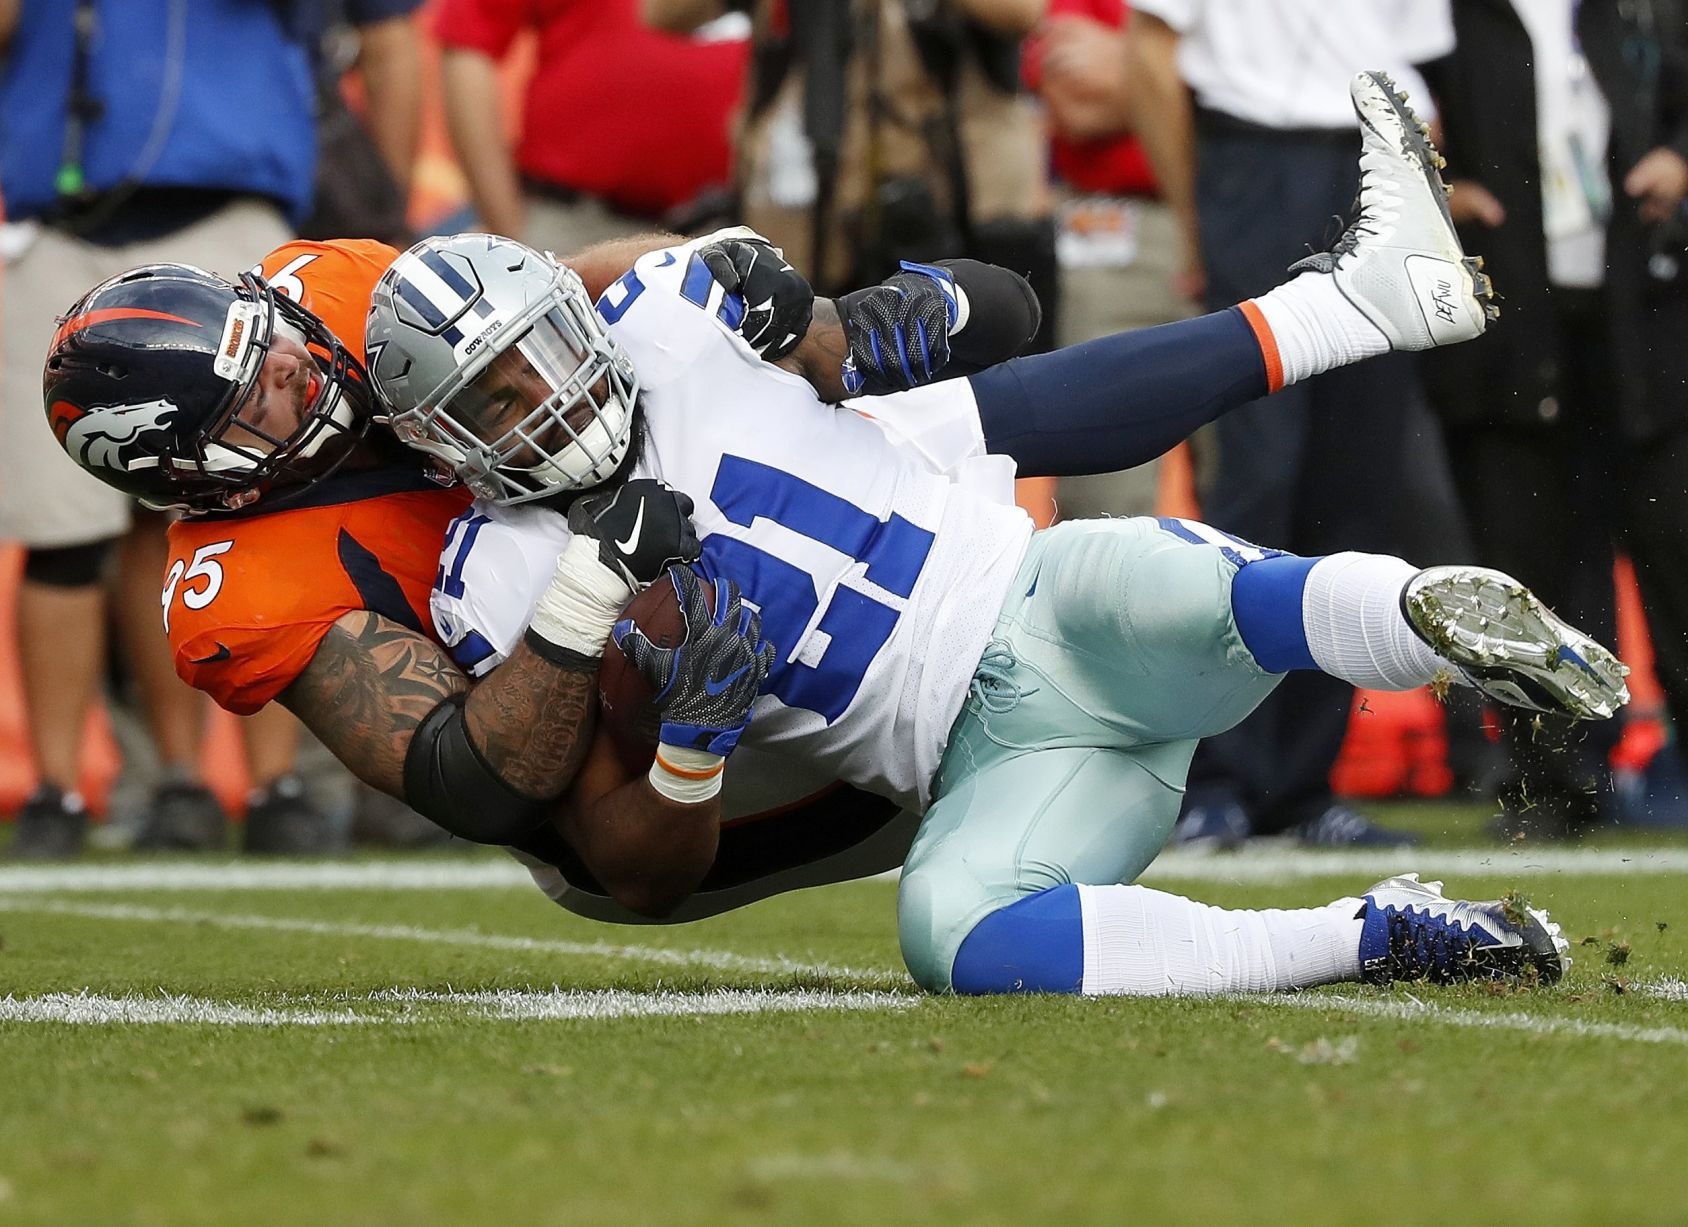 Tomlinson: Ezekiel Elliott 'quit' on his team Sunday